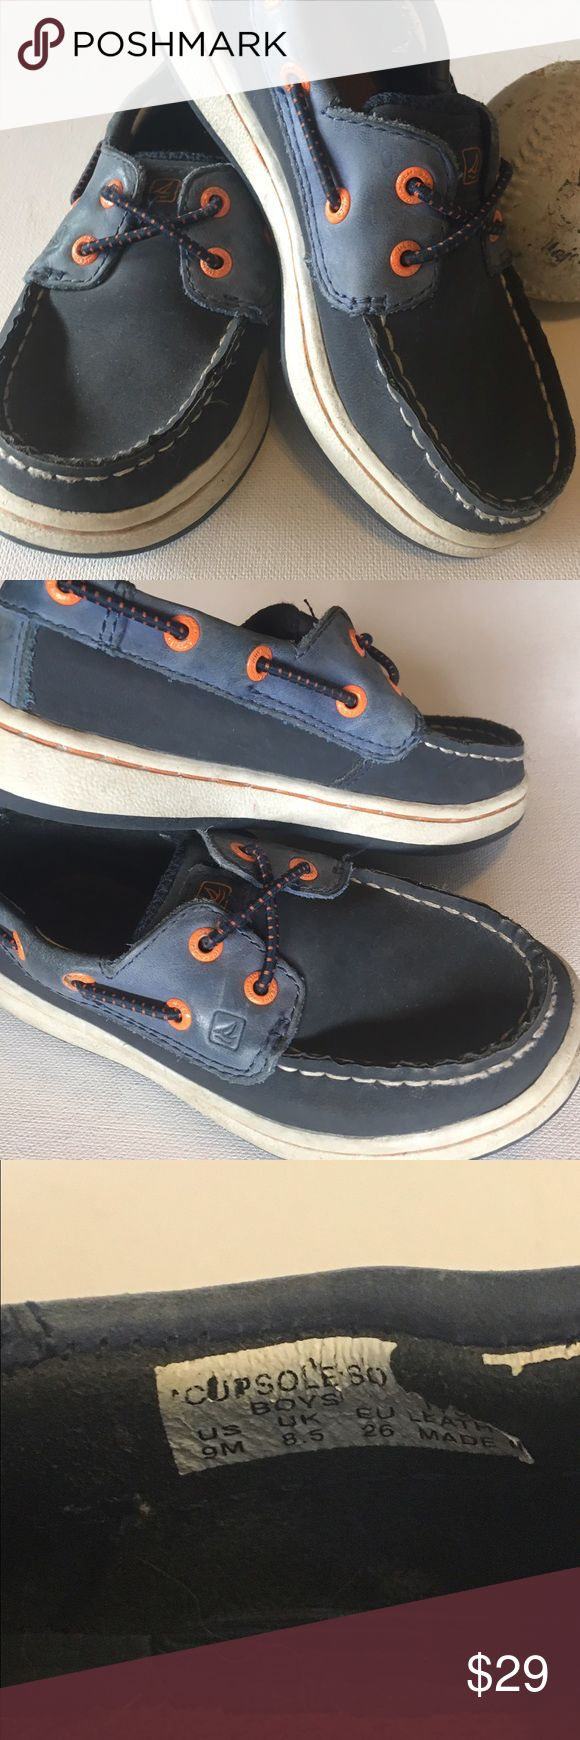 Sperry Top Sider Shoes Adorable pair of Childrens Sperry's. In great condition. Your child will look very stylish. Pop of orange on the blue shoe. Normal wear from previously worn shoe. Overall in good condition. Soles in excellent condition. Sperry Top-Sider Shoes